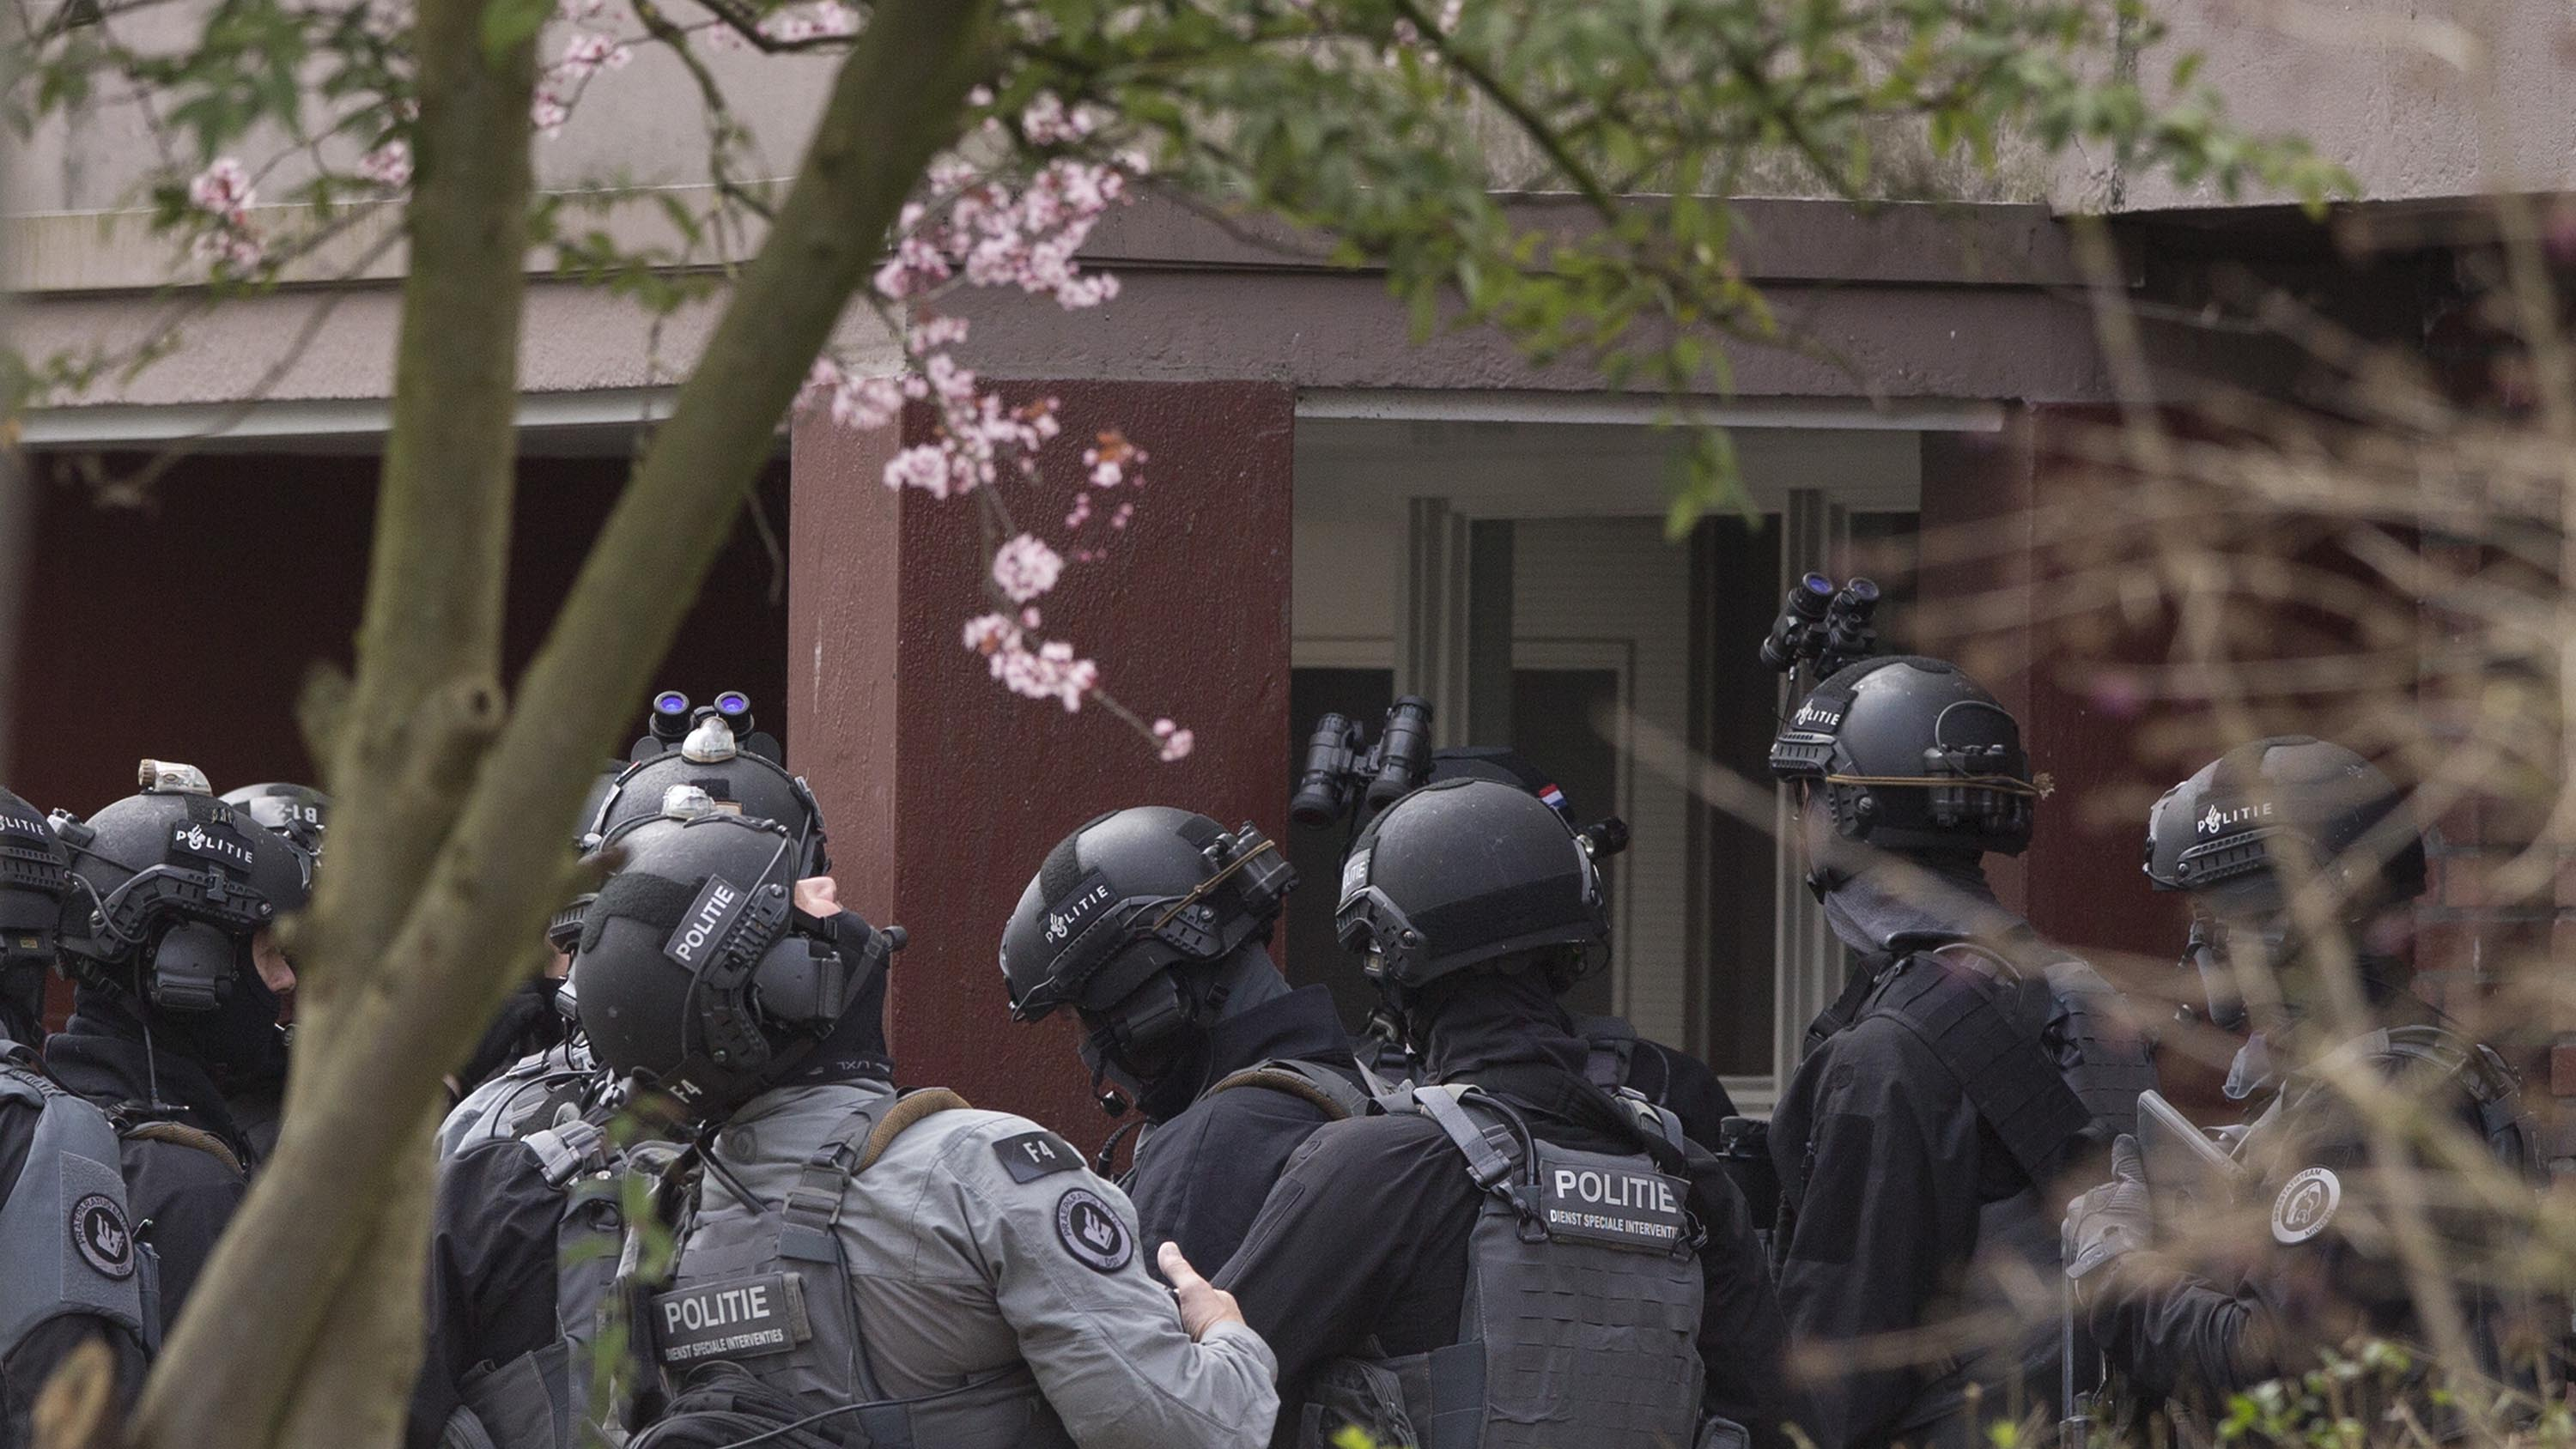 """Dutch counter terrorism police prepare to enter a house after a shooting incident in Utrecht, Netherlands, Monday, March 18, 2019. Police in the central Dutch city of Utrecht say on Twitter that """"multiple"""" people have been injured as a result of a shooting in a tram in a residential neighborhood. (AP Photo/Peter Dejong)"""